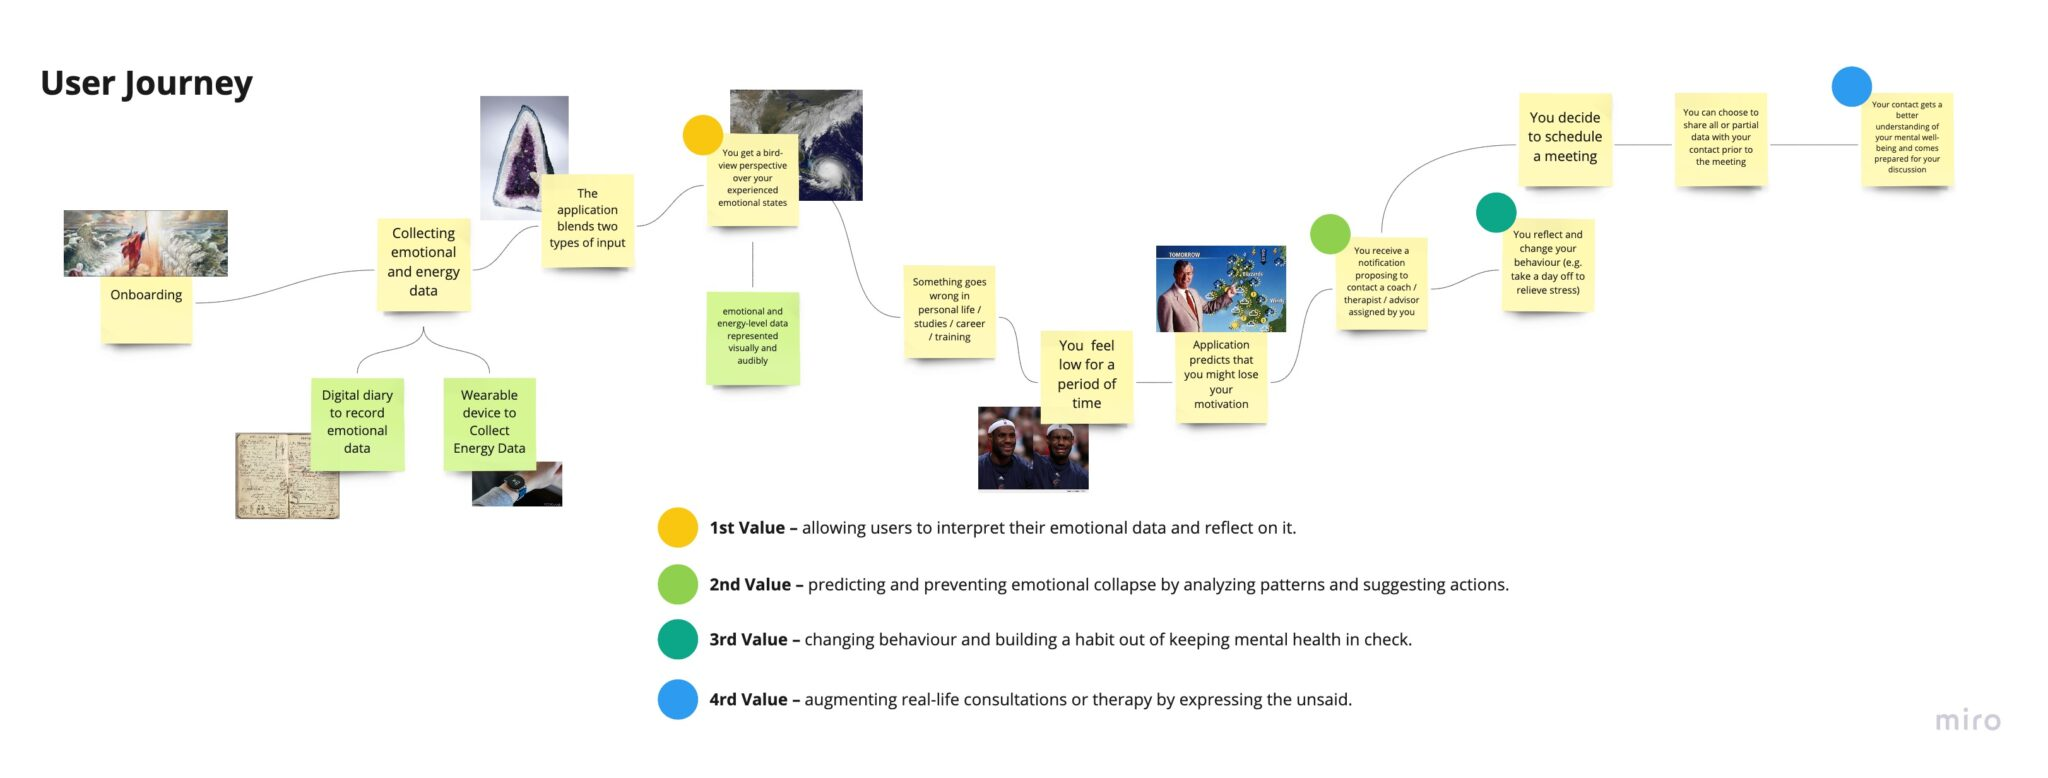 User journey detailing the athletes interactions with a self-journaling mobile app and receiving notifications about their emotional state.